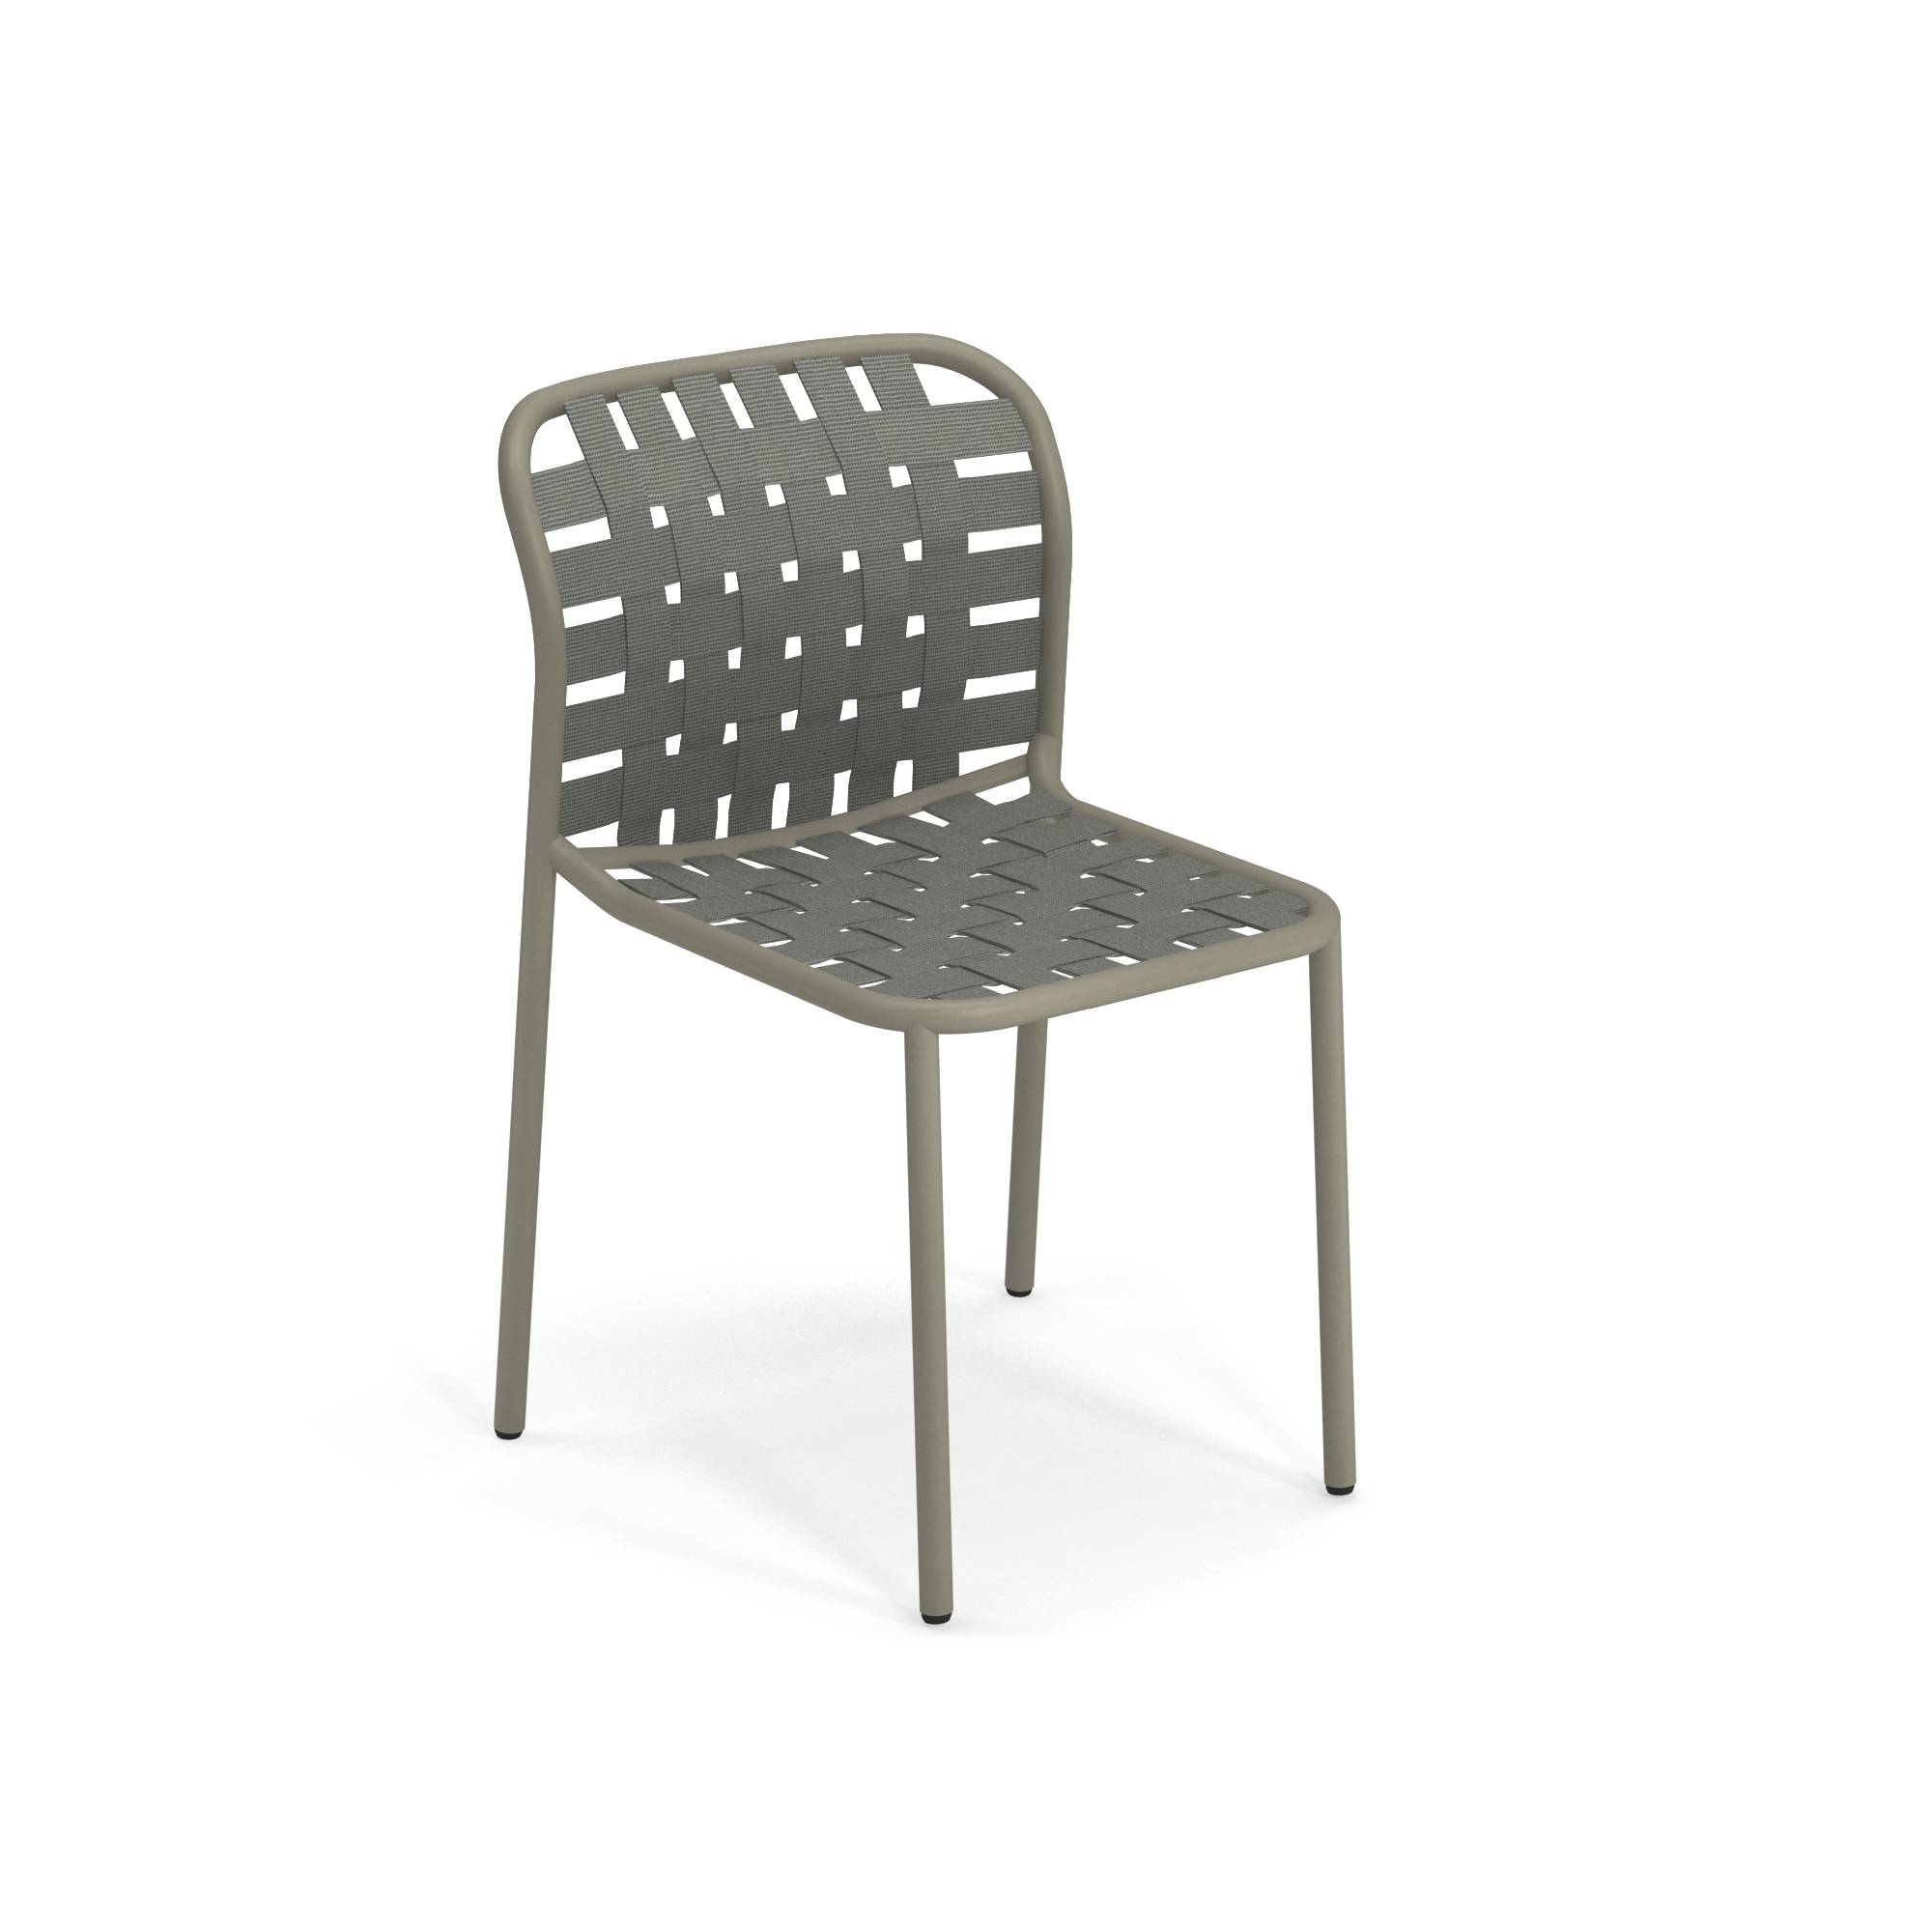 Garden chair / outside in Aluminium - Collection Yard